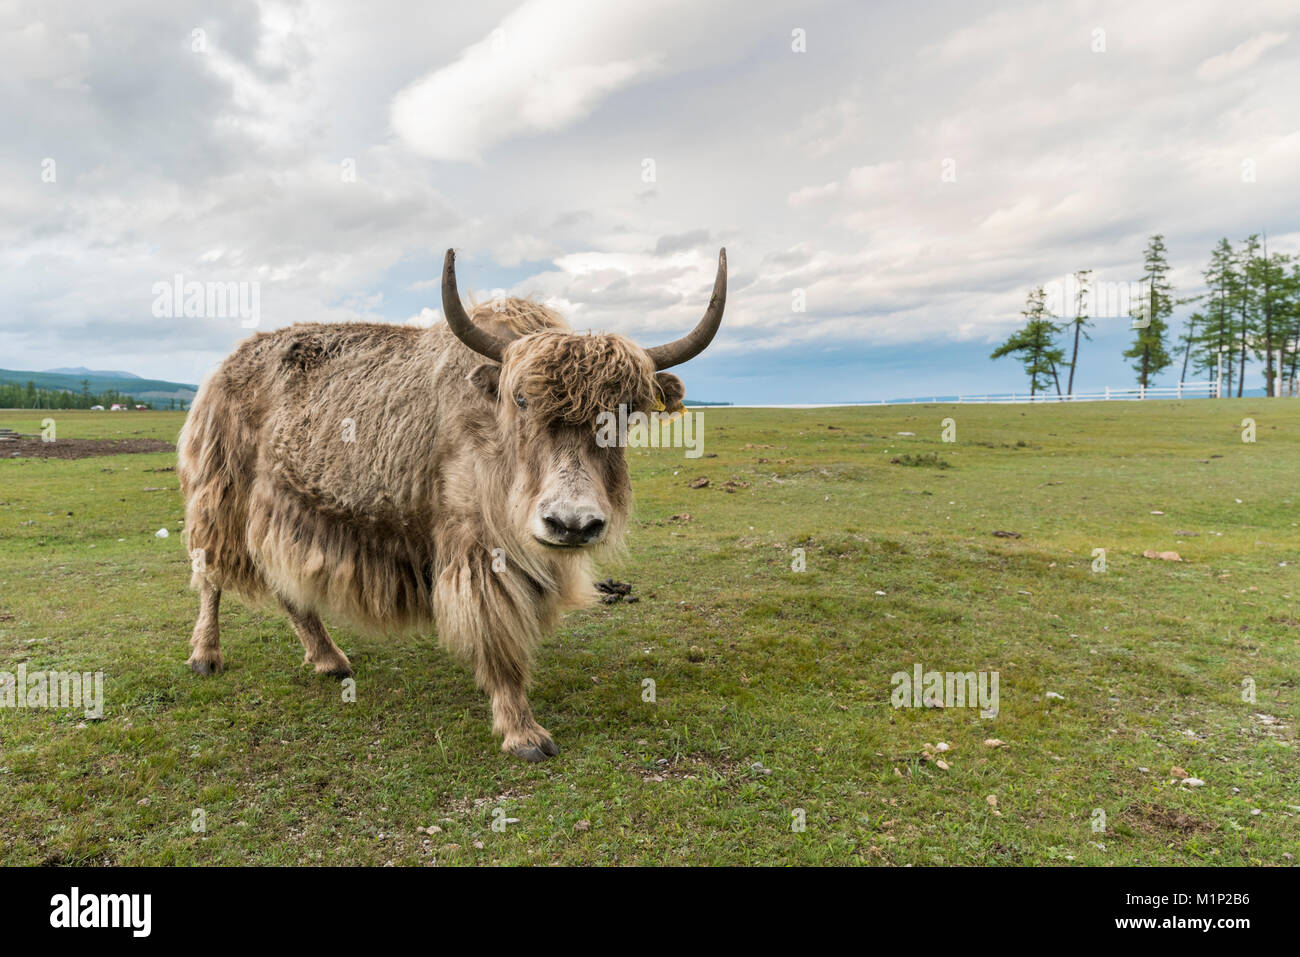 Yak on the shores of Hovsgol Lake, Hovsgol province, Mongolia, Central Asia, Asia - Stock Image